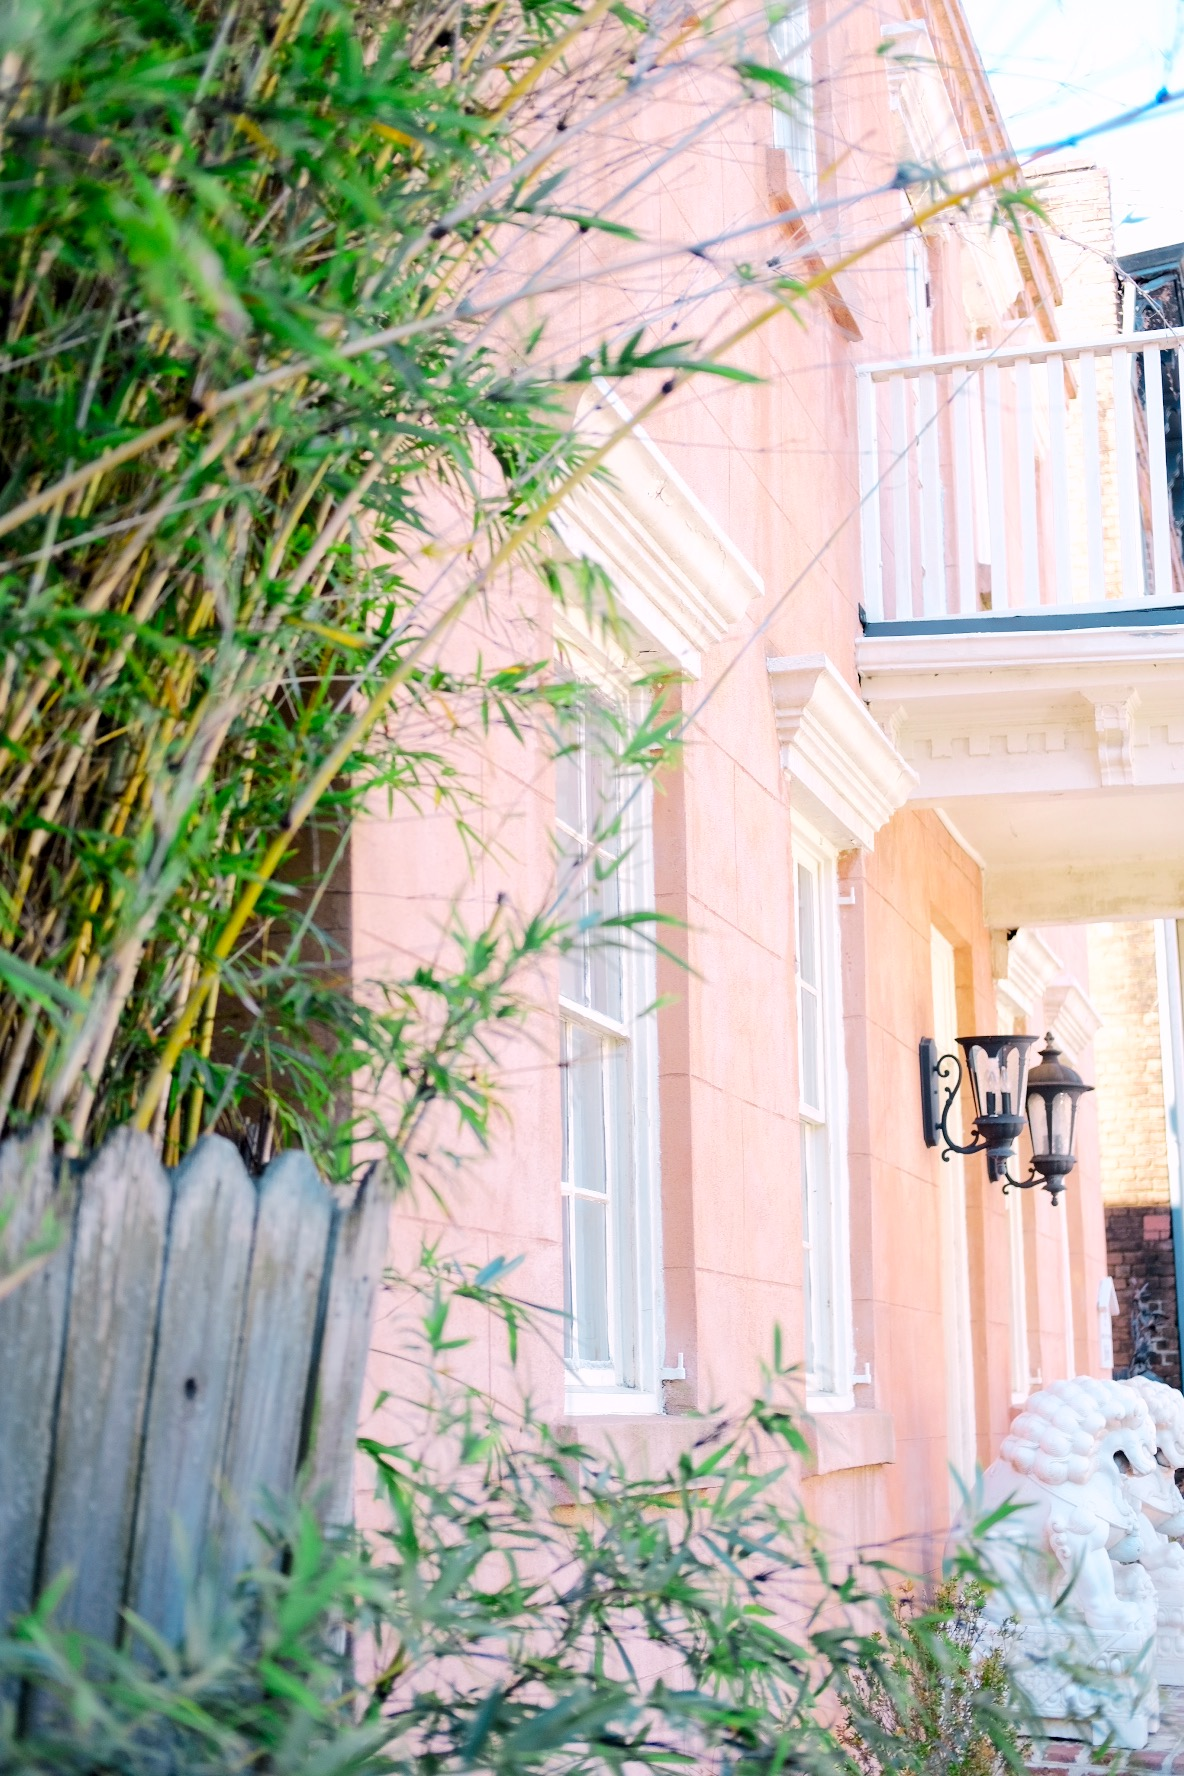 Savannah_Georgia_pink_House_The_Best_Savannah_Historic_Walking_Tour